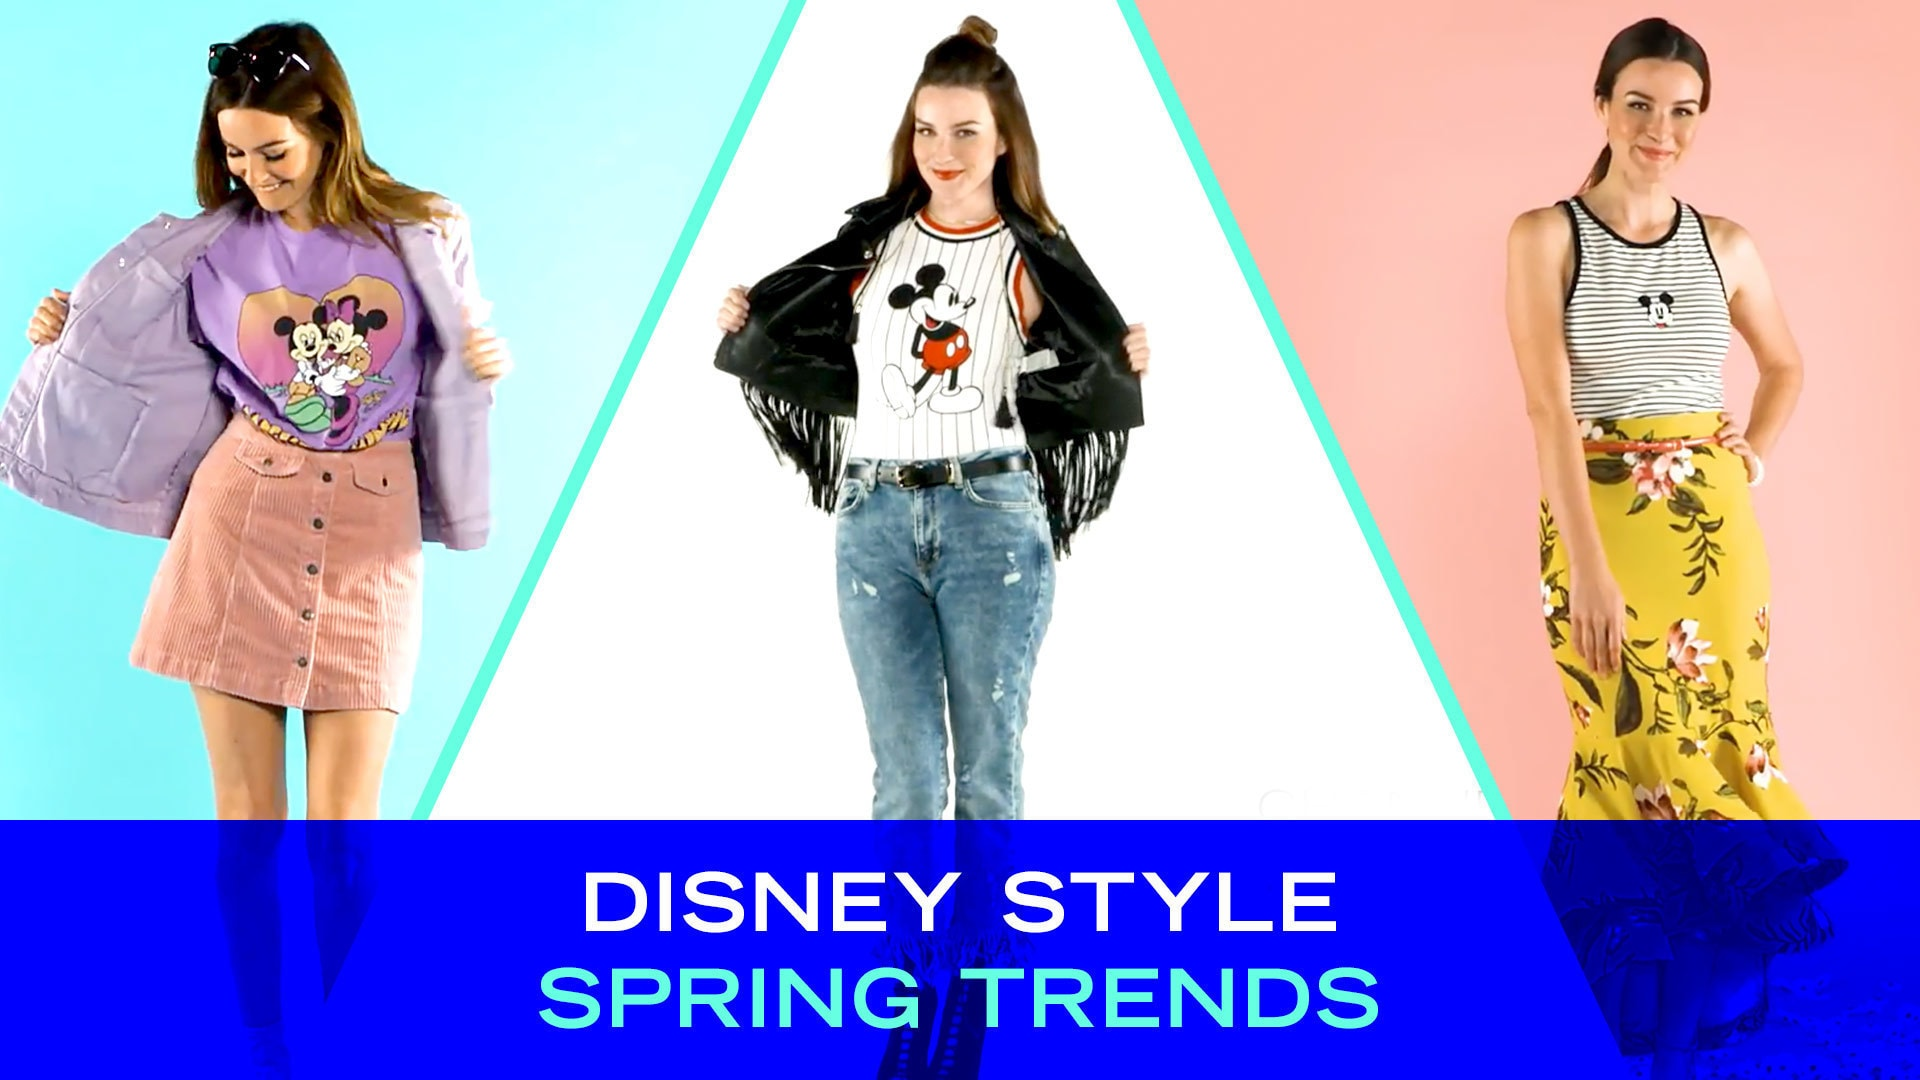 Spring Trends With Disney Style | Fashion by Disney Style